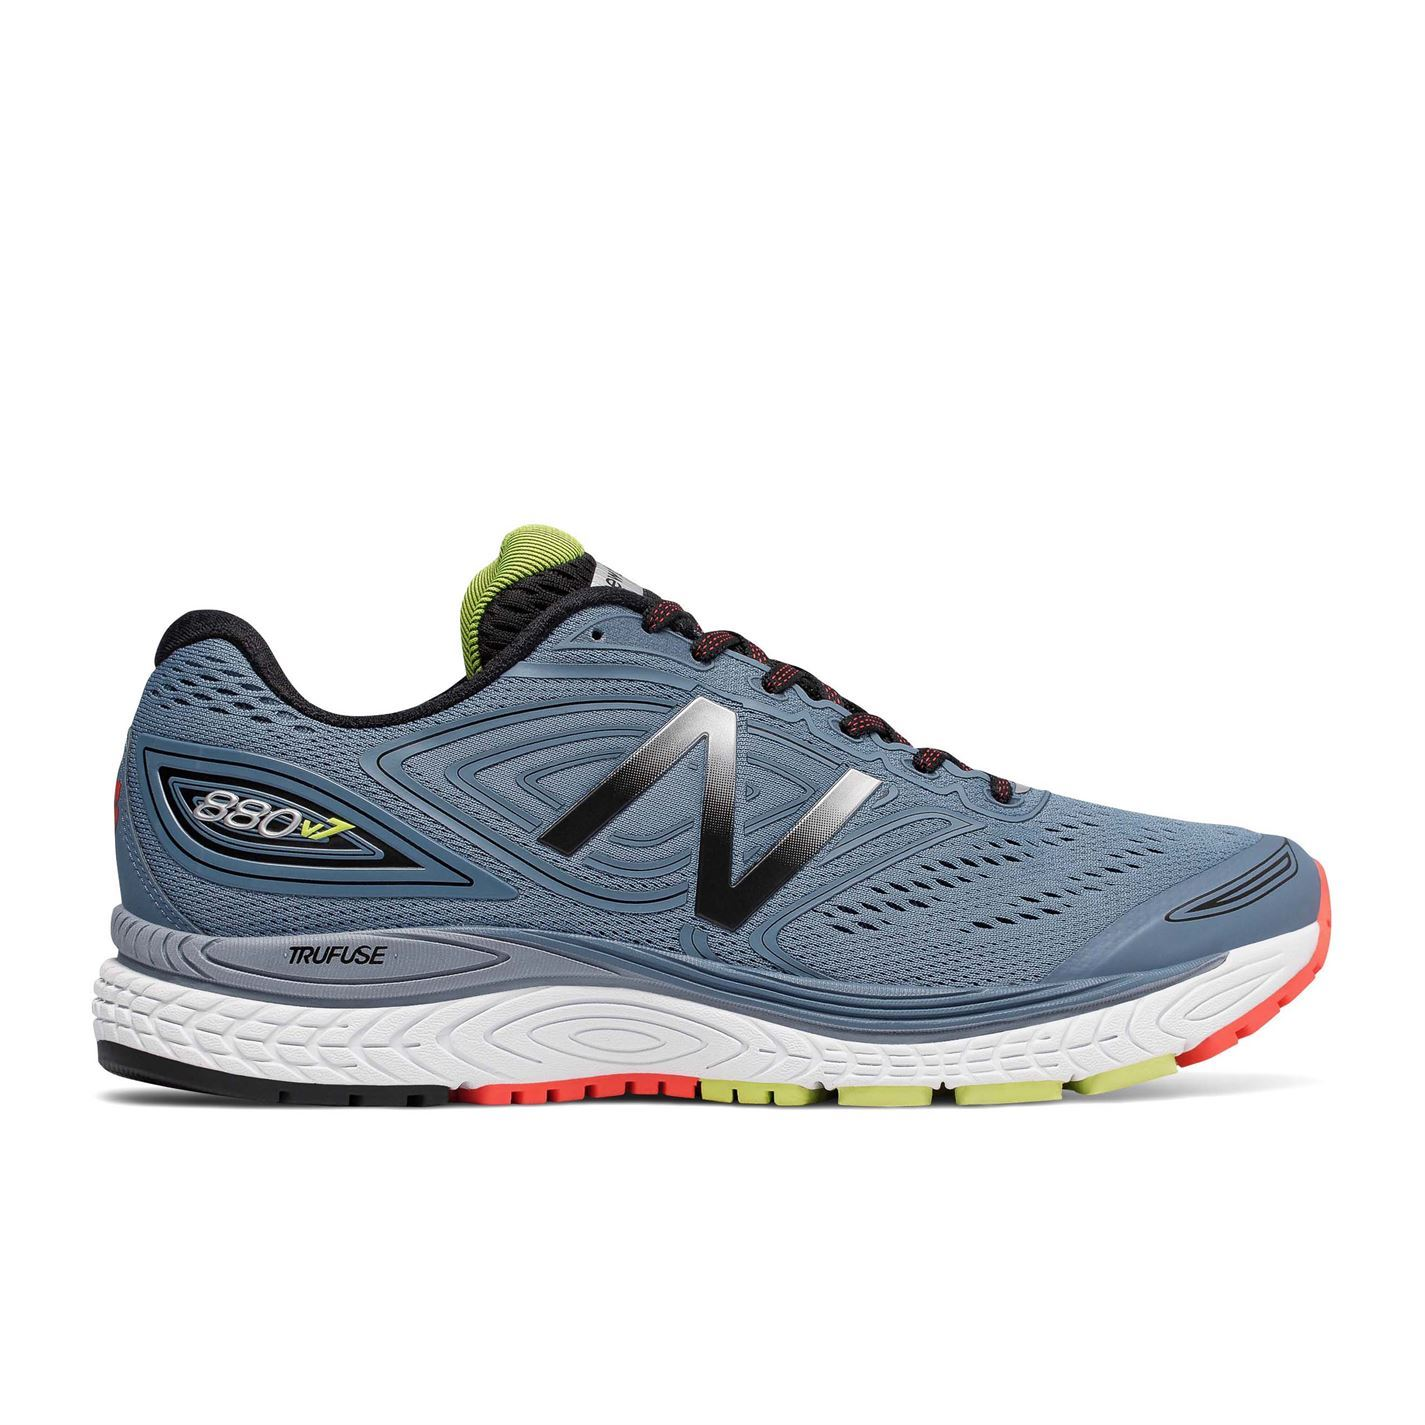 Balance New Course D Hommes Jogging Chaussures Fitness 880v7 pwqd8wWz